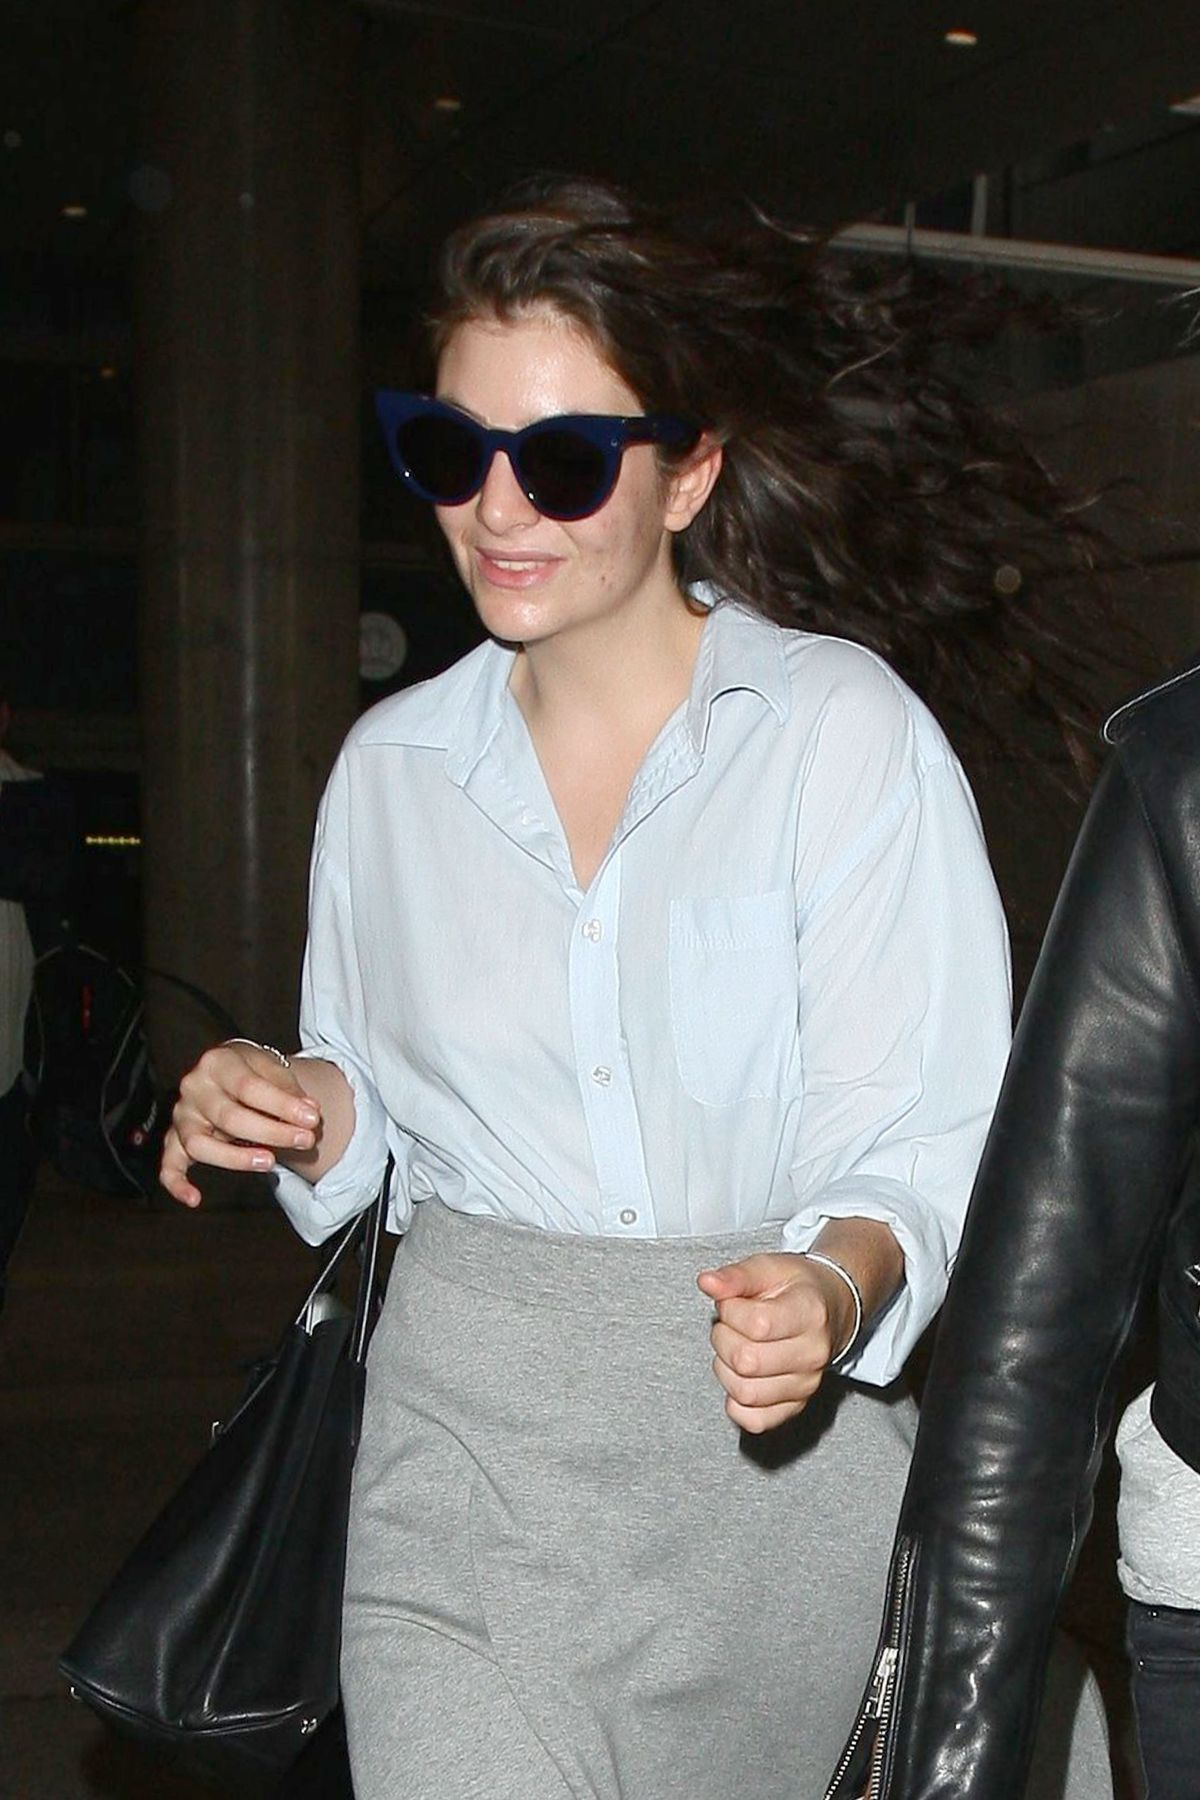 LORDE Arrives at LAX Airport in Los Angeles 04/26/2015